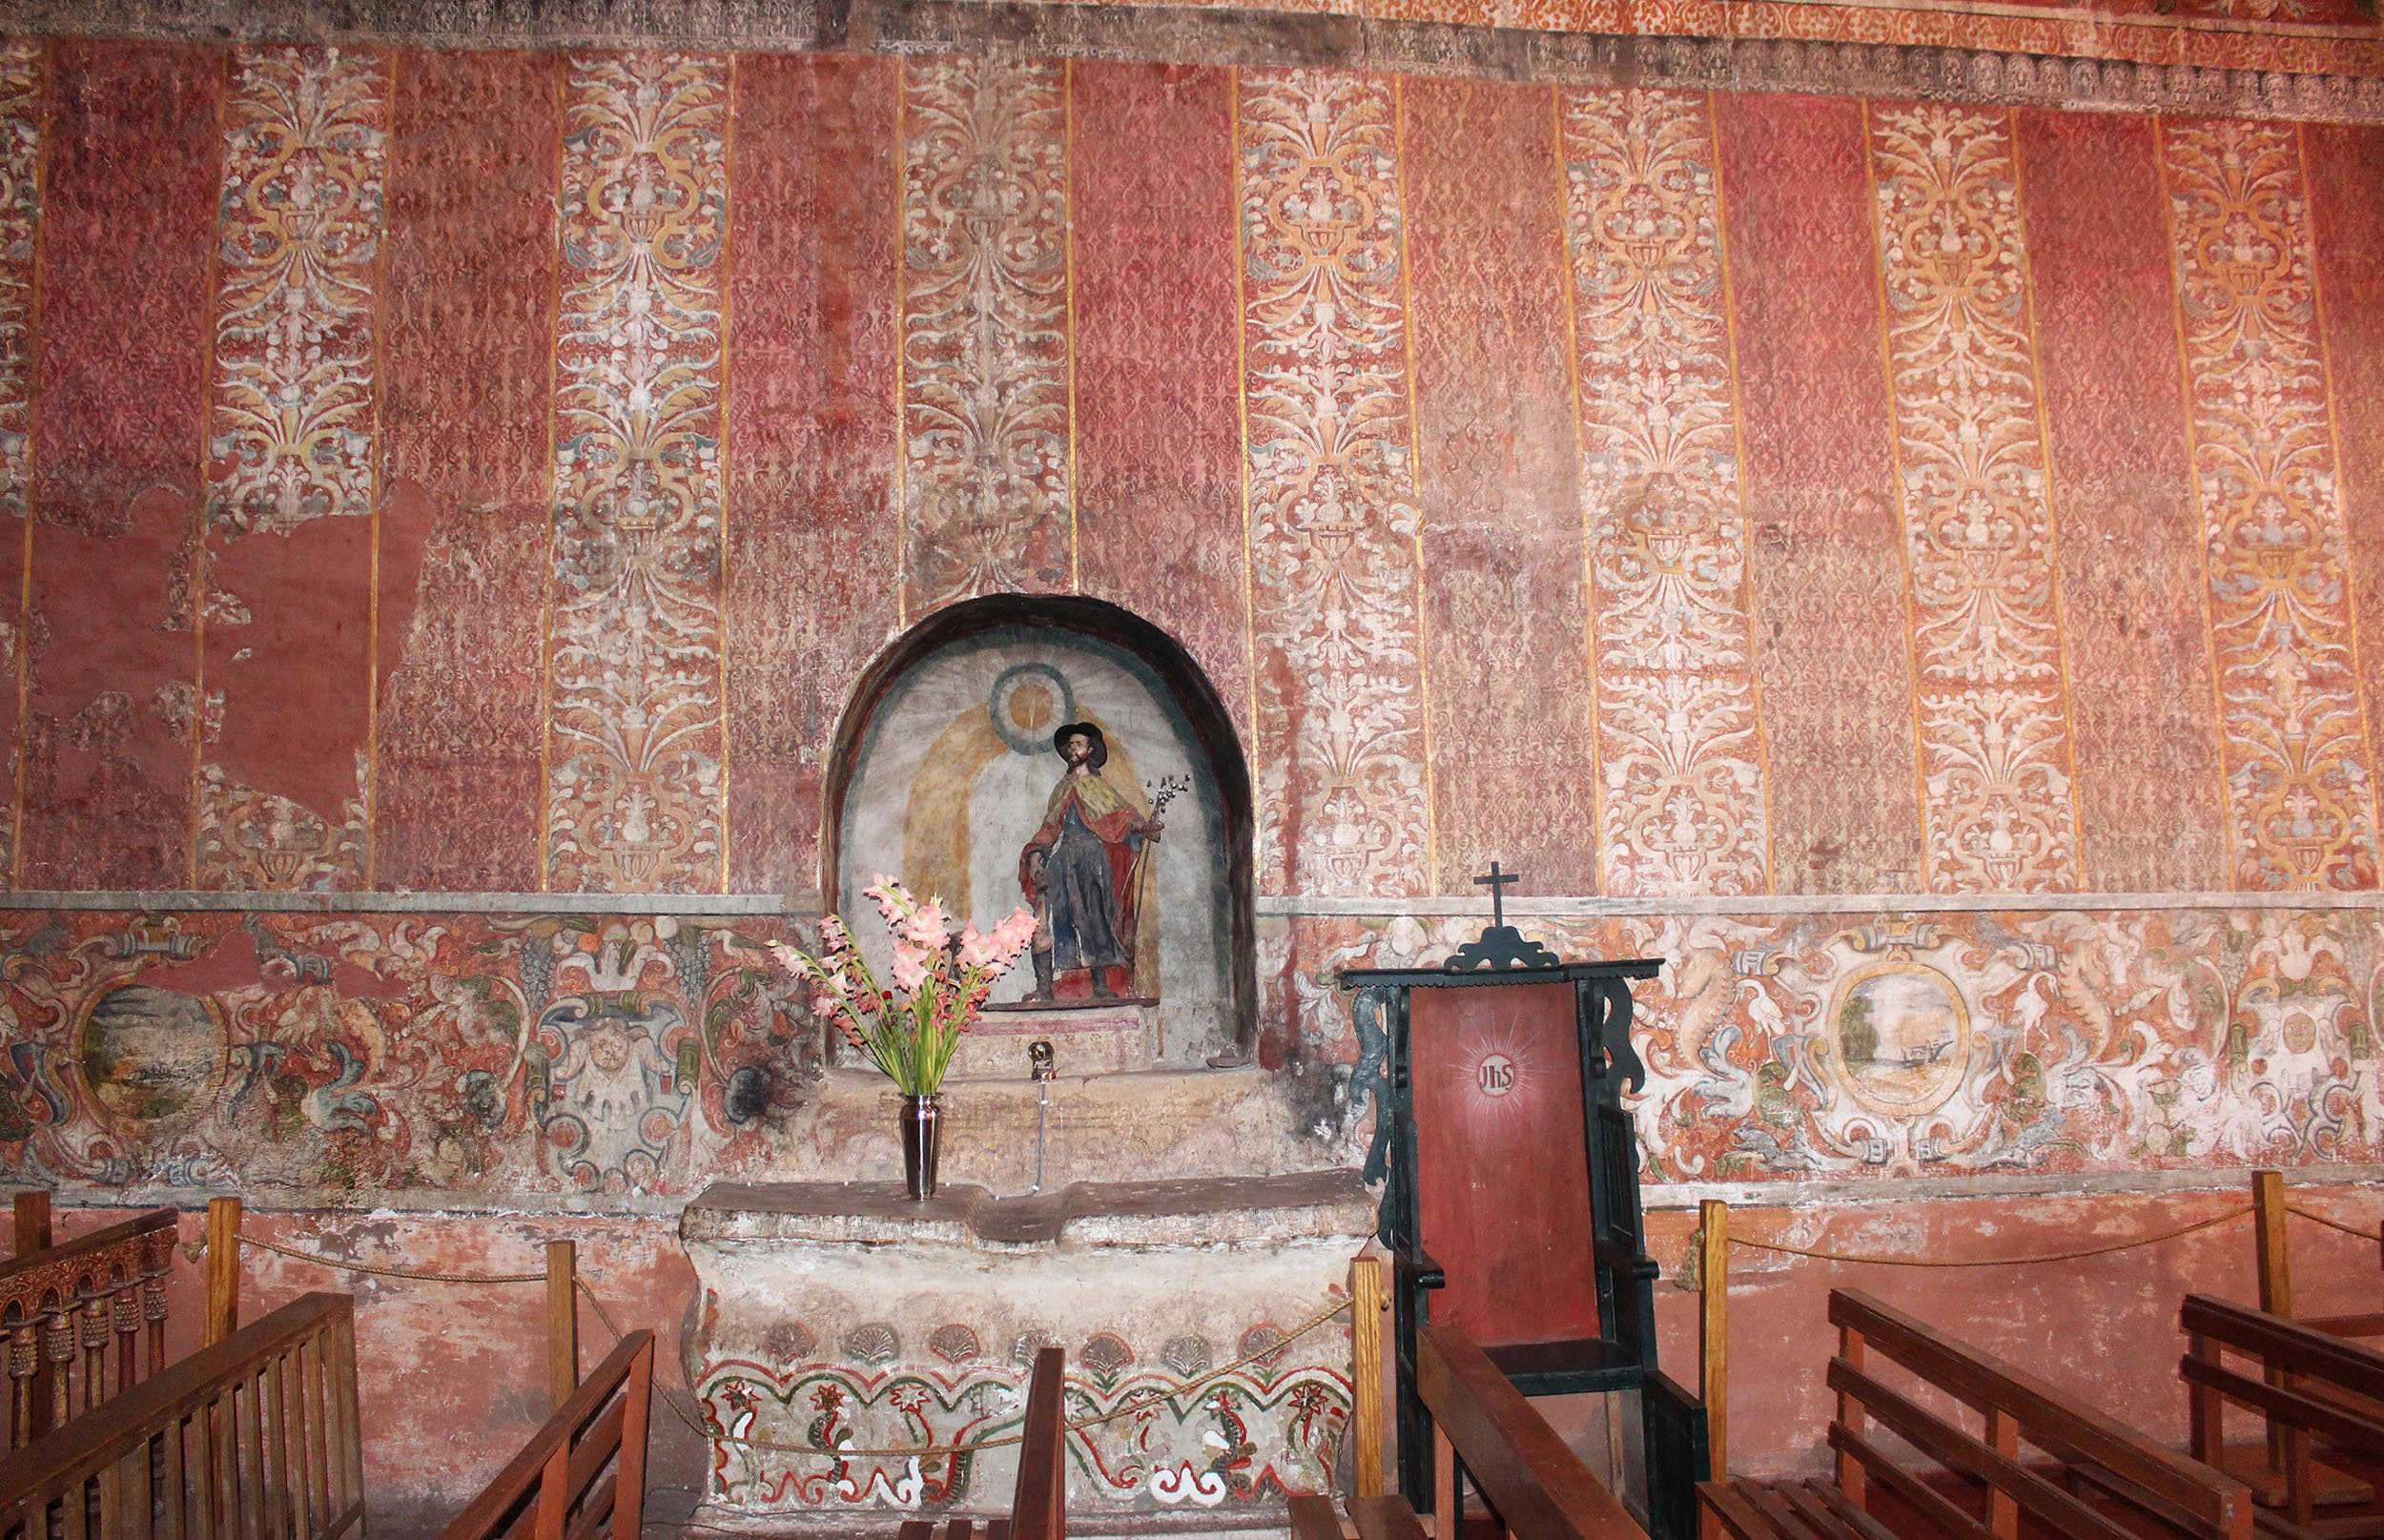 Fig. 13 Detail, textile murals at Capilla de Nuestra Señora de la Candelaria de Canincunca decorated with painted damasks, late 17th or early 18th century, Quispicanchi Province. Photo by author.